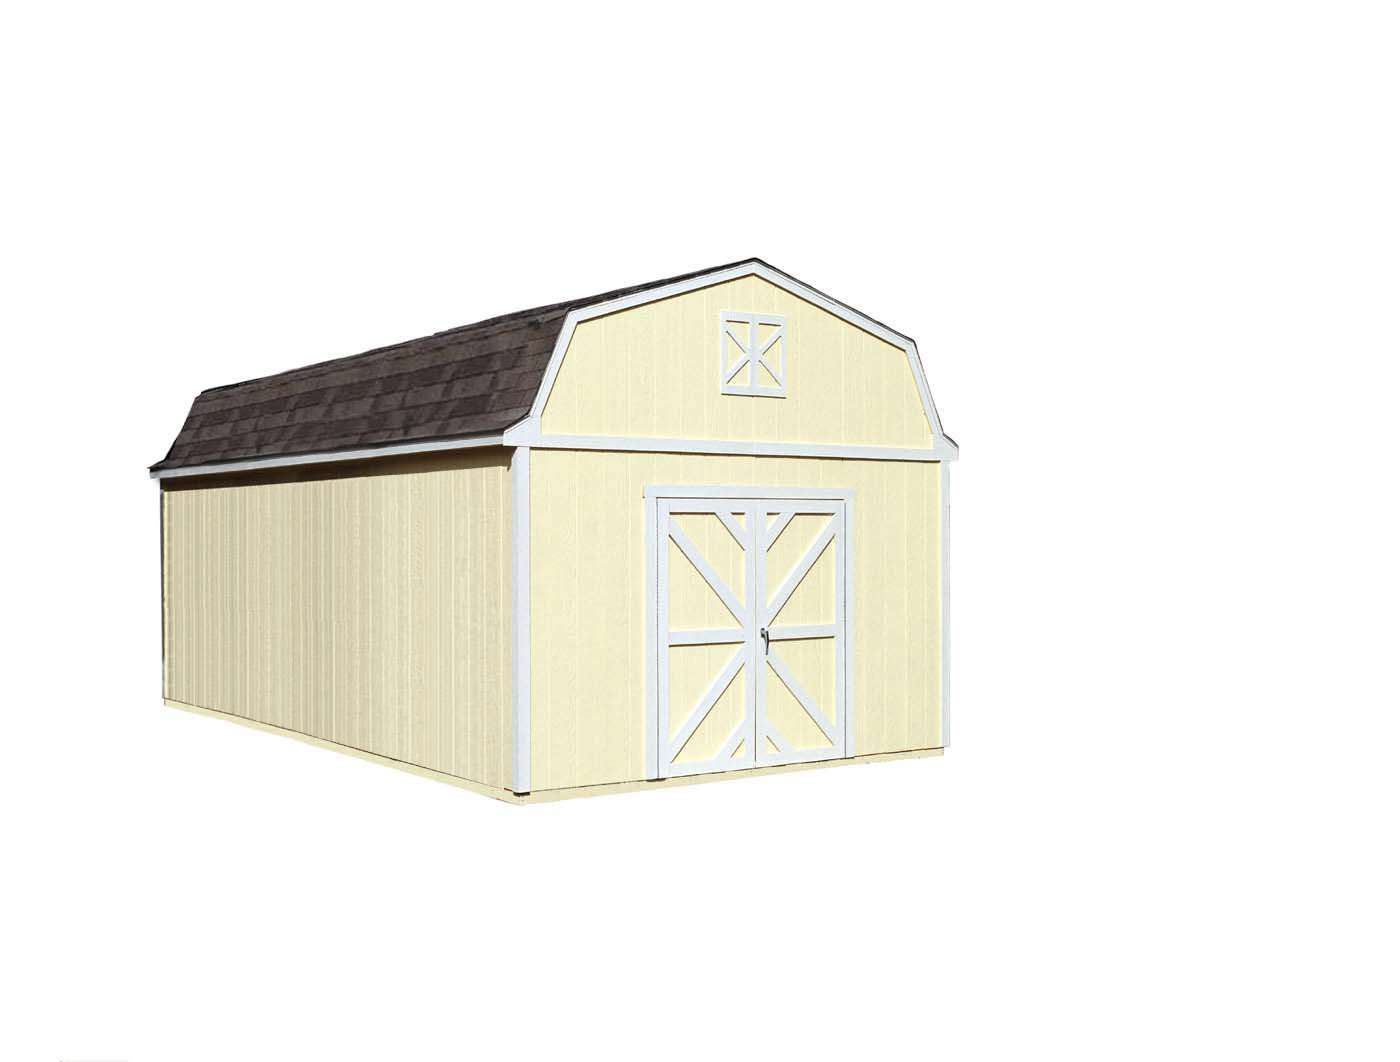 Handy Home Products Sequoia Wooden Storage Shed, 12 by 24-Feet by Handy Home Products